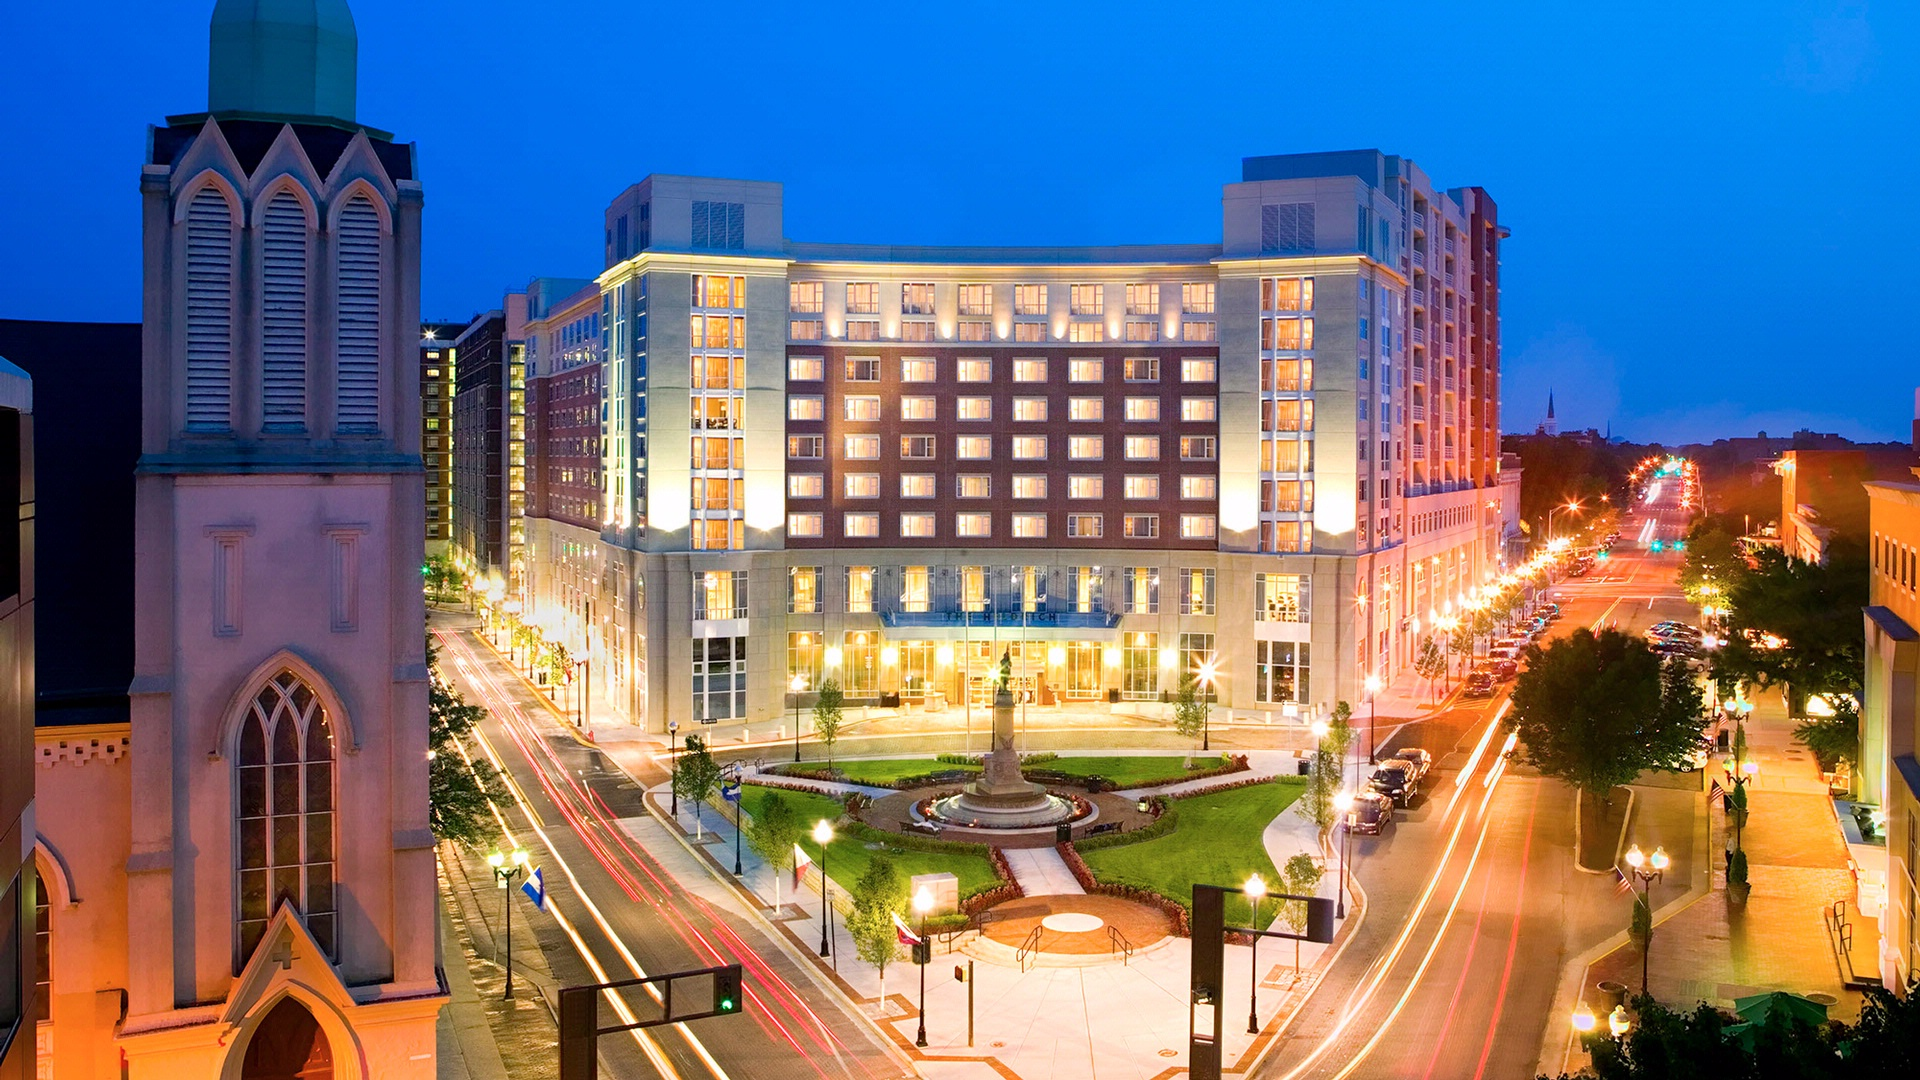 The Heldrich Cultural Heart Of New Brunswick Benchmark Resorts Hotels